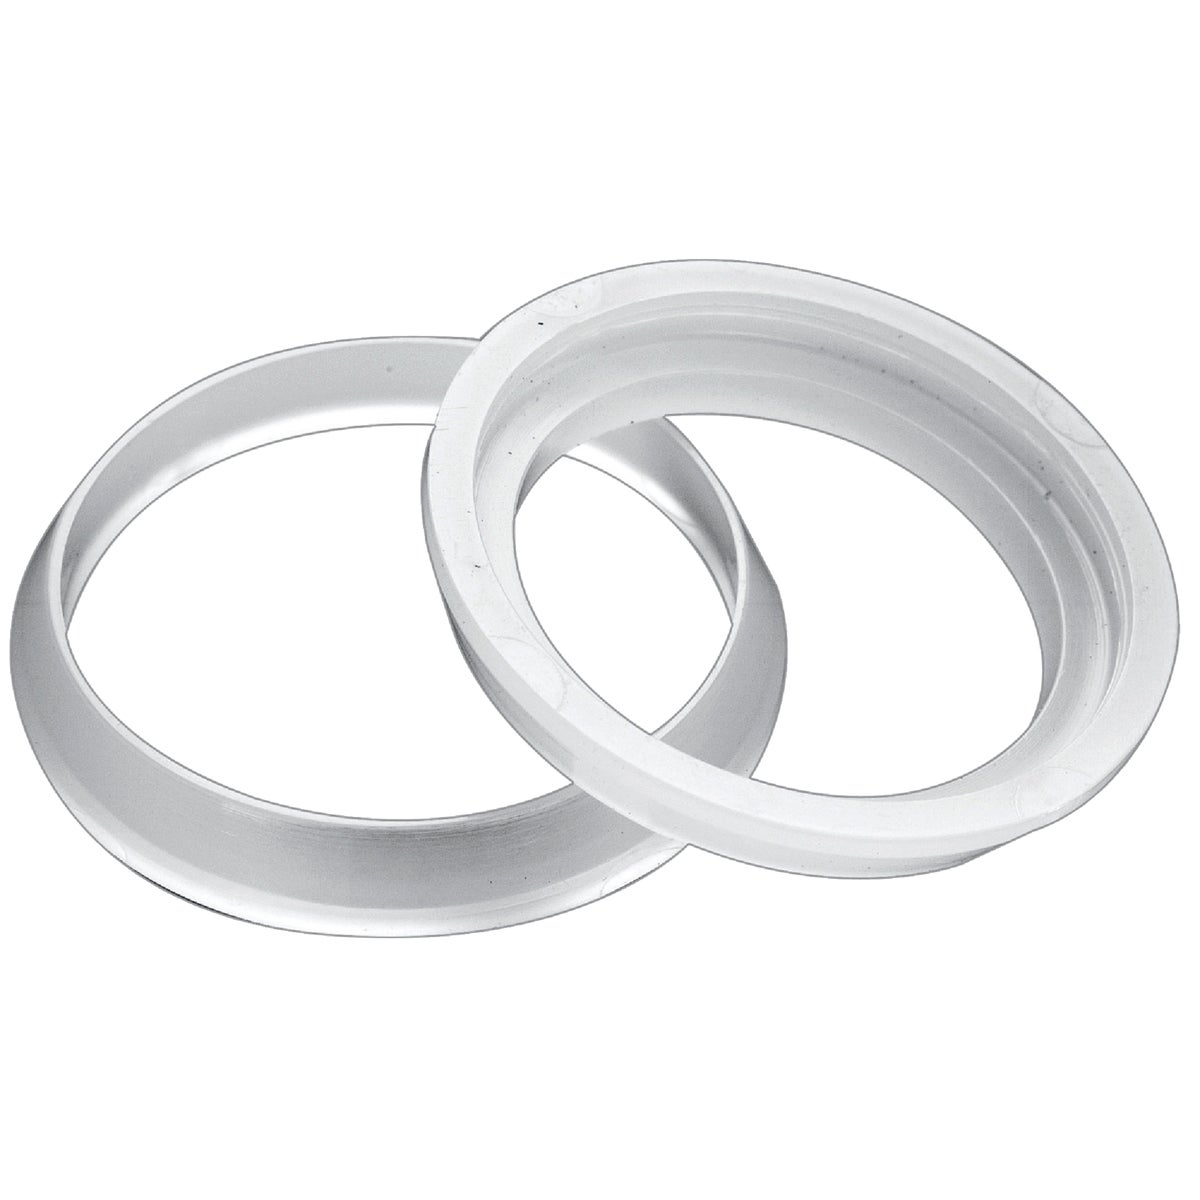 2PK REDUC S/J WASHERS - 479276 by Plumb Pak/keeney Mfg